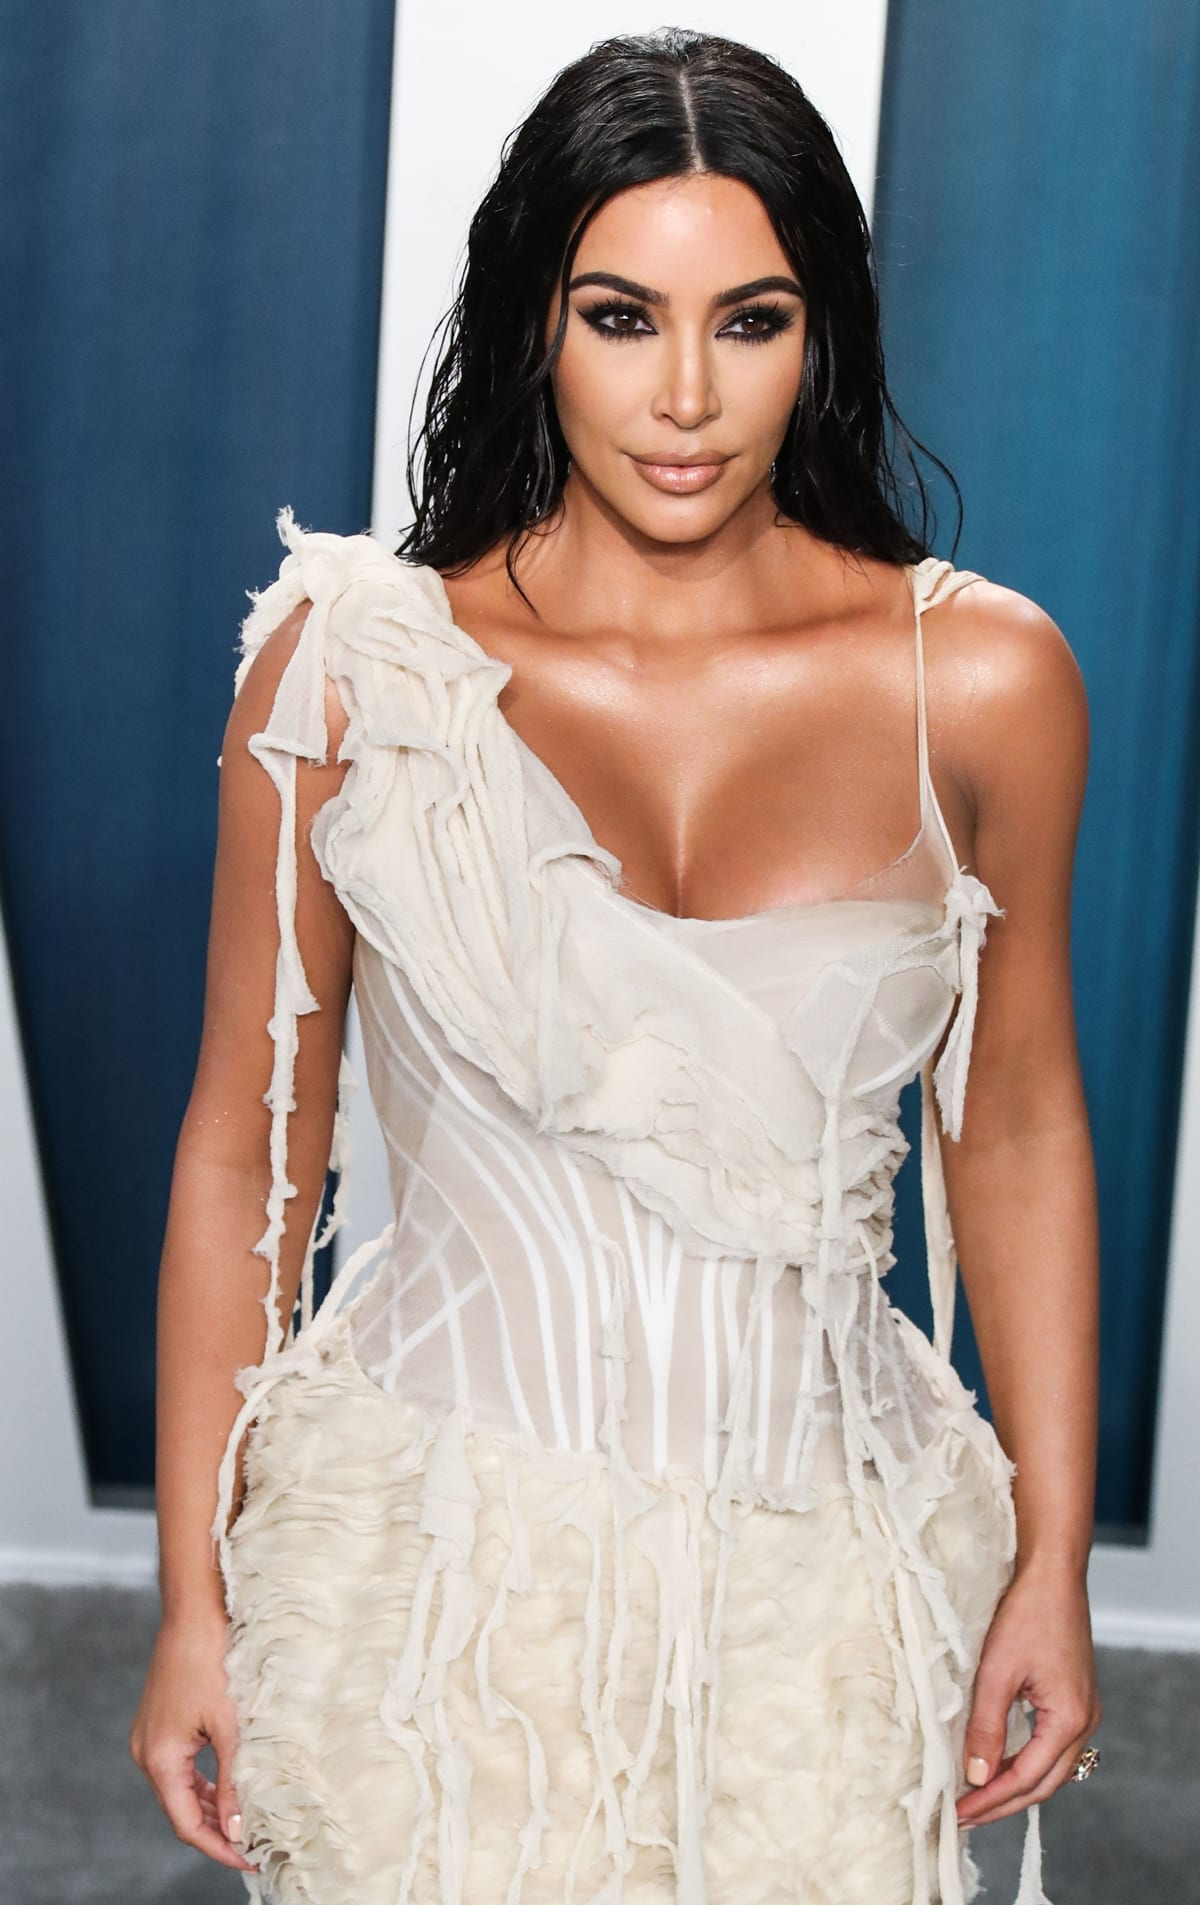 Kim Kardashian claims not to have been aware of where Skims shapewear products were produced